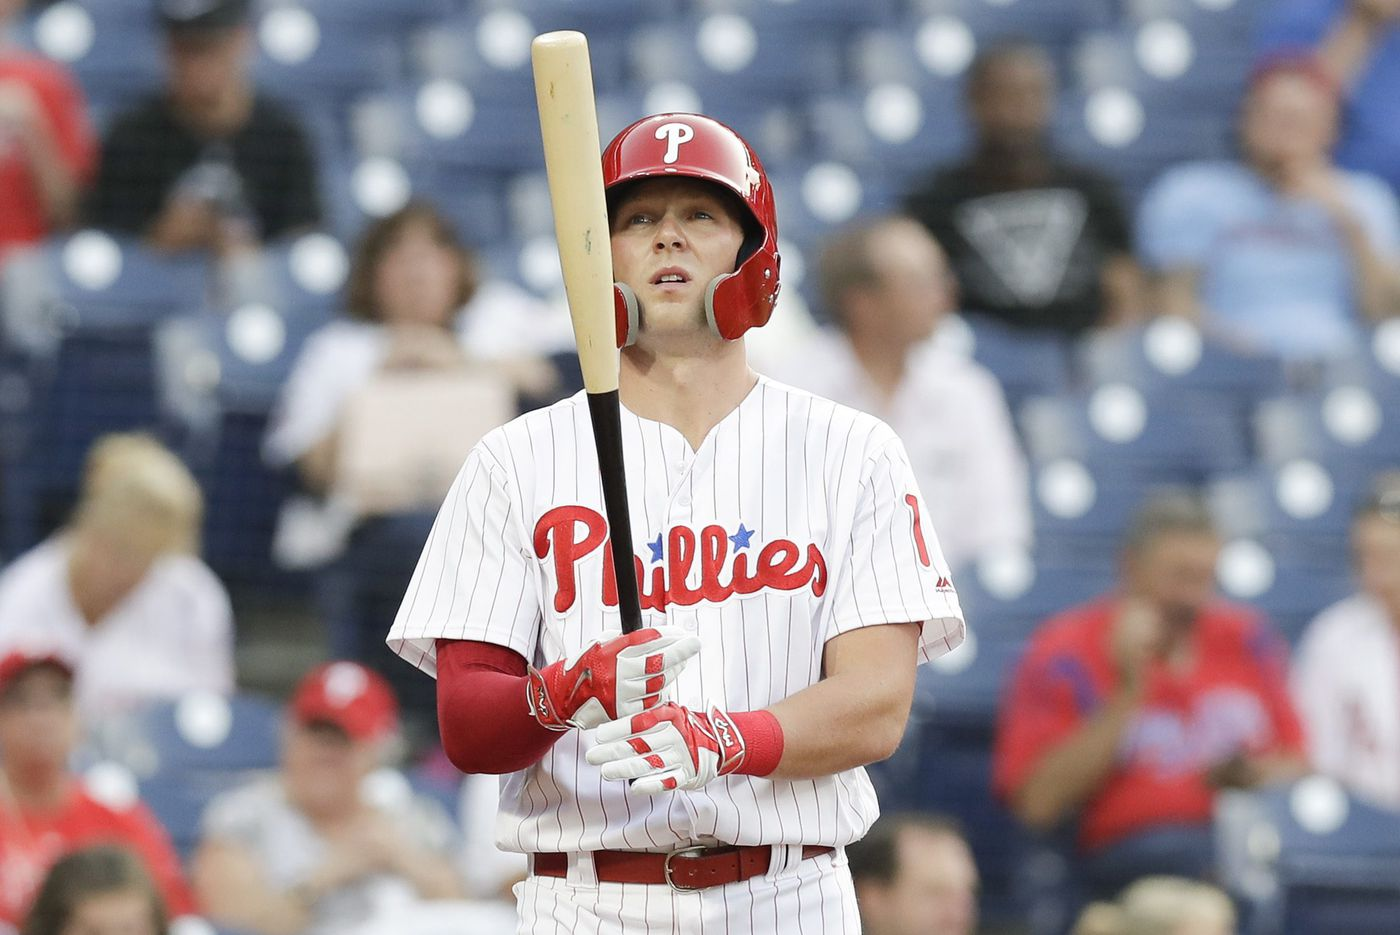 Phillies' Rhys Hoskins one of the favorites to win Monday's Home Run Derby | Sports betting